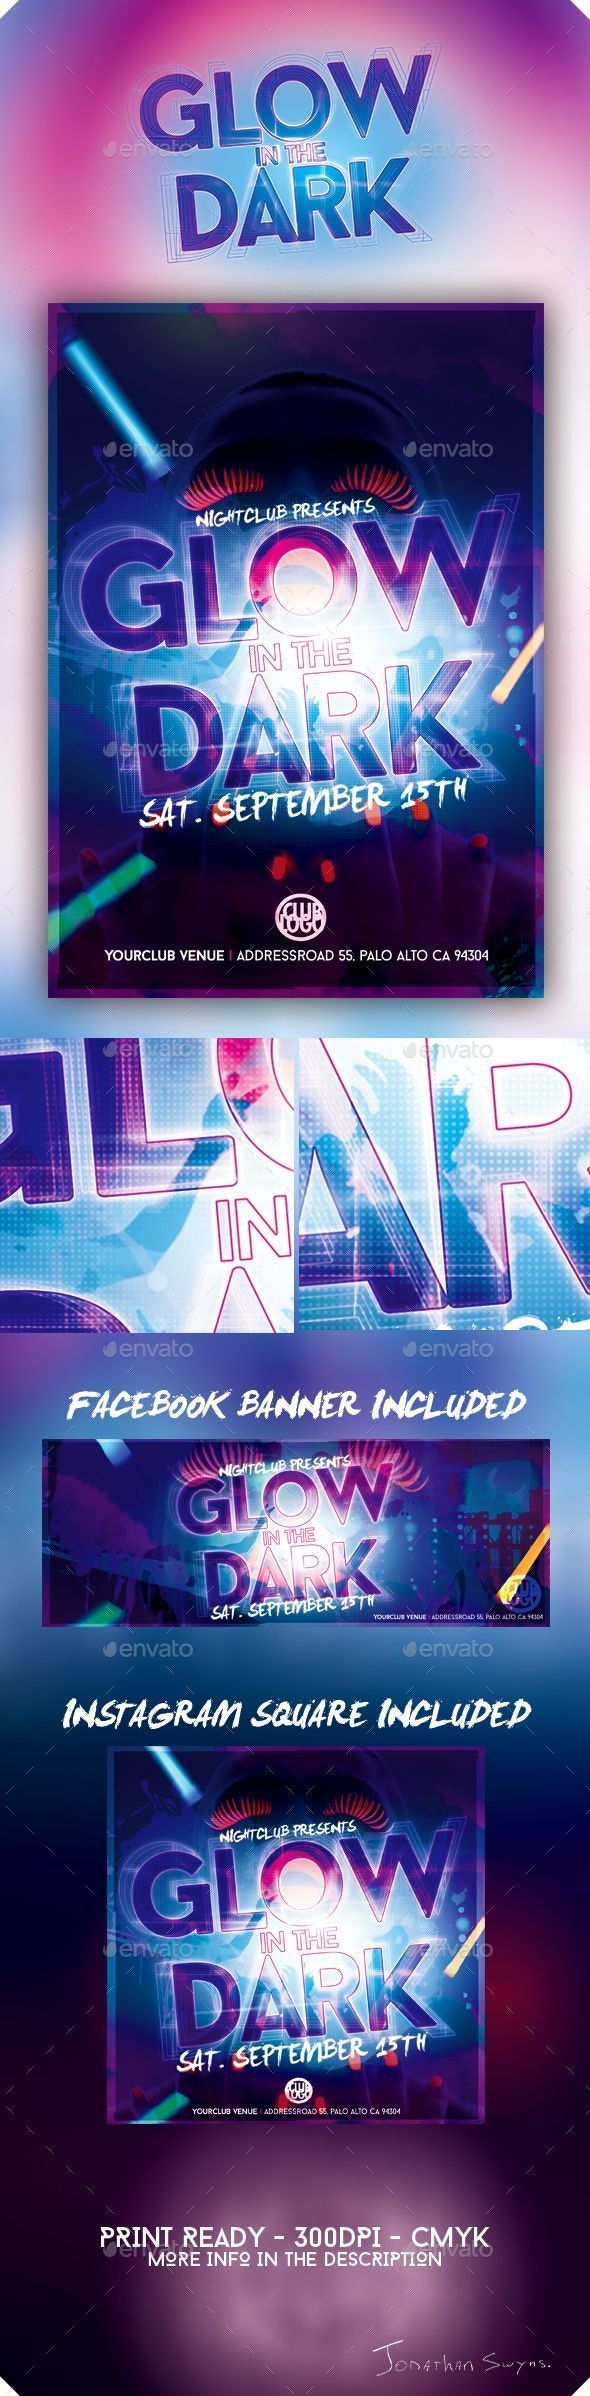 Glow in the Dark Flyer / Poster - Clubs & Parties Events